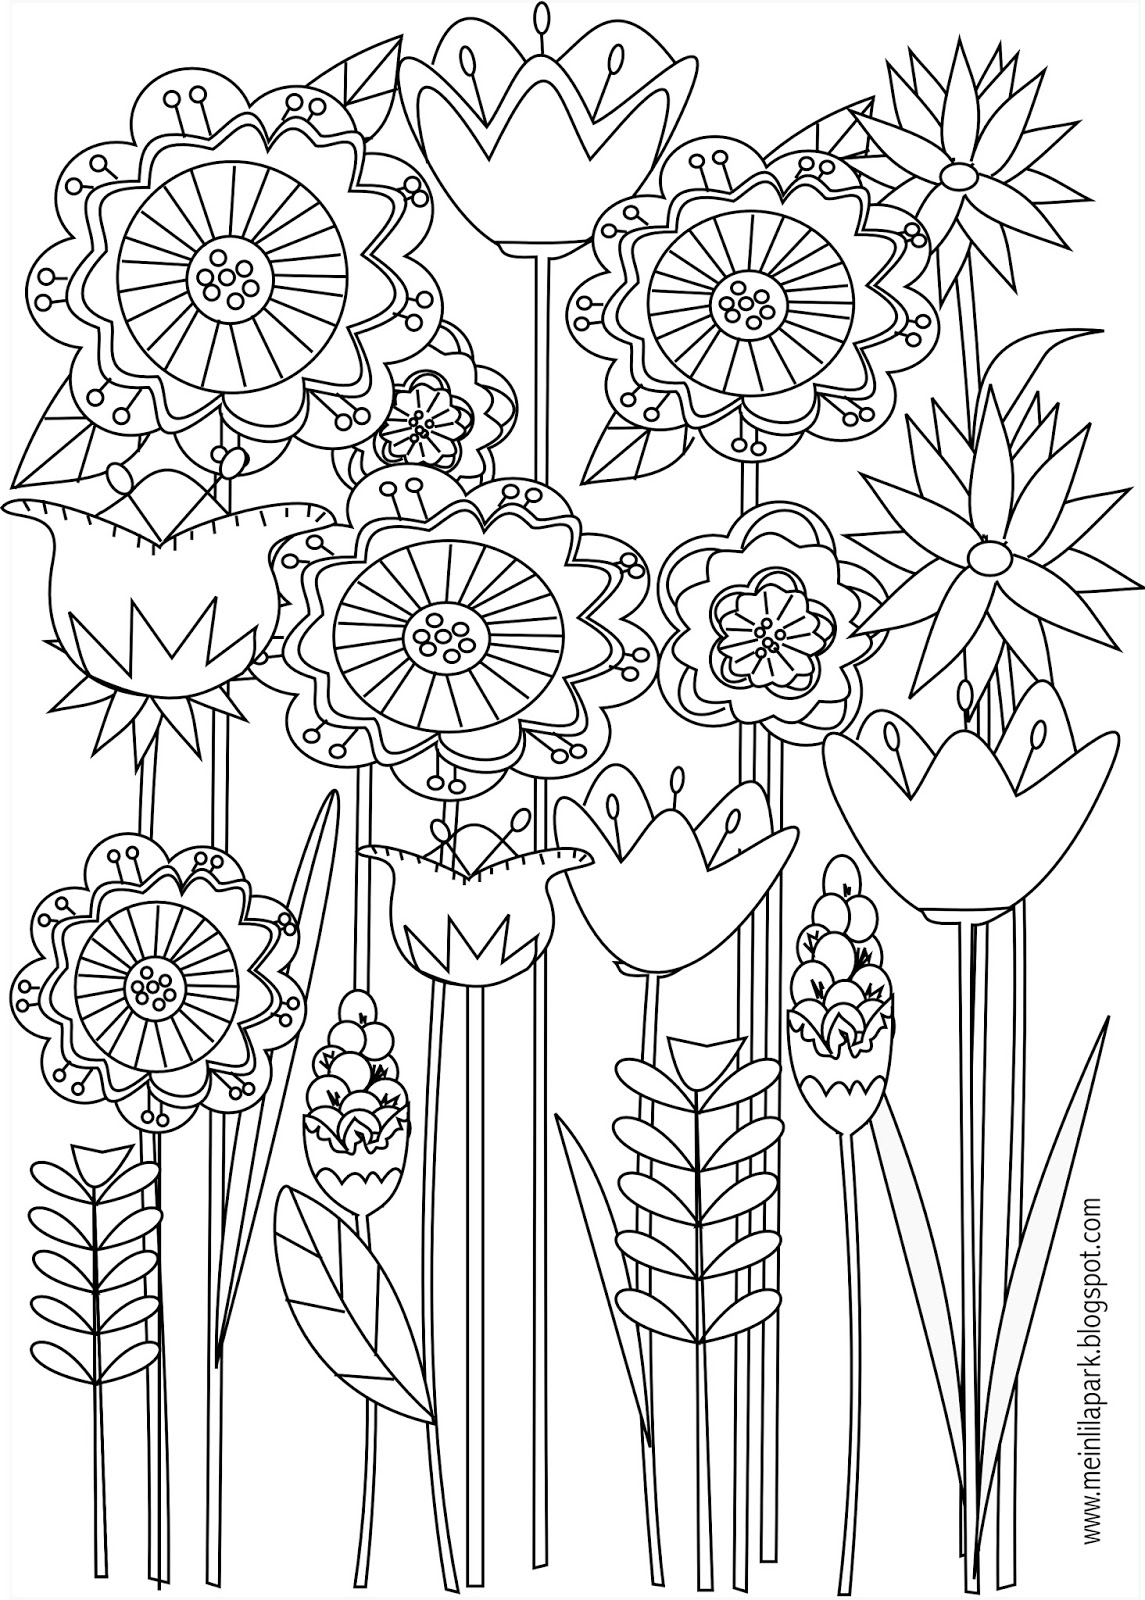 flower coloring pages printables free printable flower coloring pages for kids best printables flower pages coloring